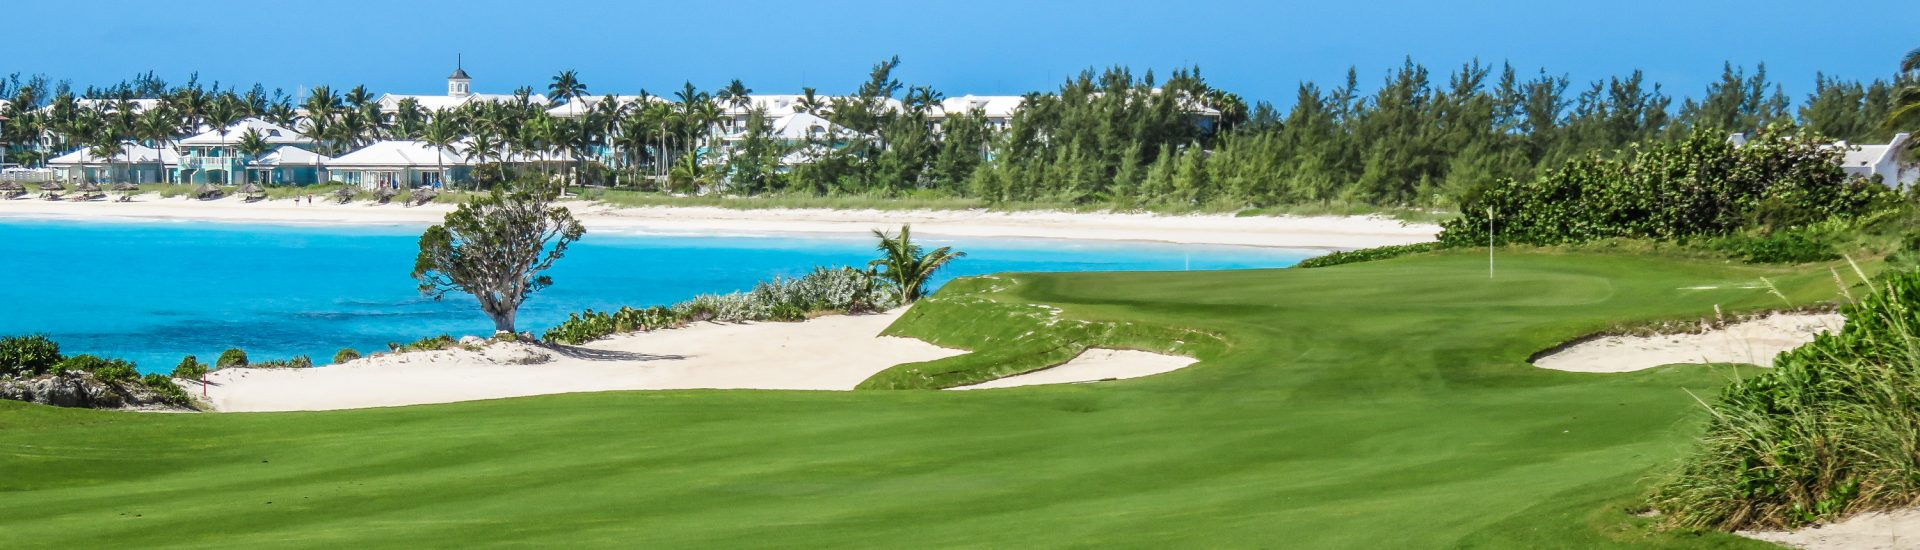 Emerald Bay Bahamas is home to the Grand Isle Resort and Spa, Sandals Emerald Bay and a championship golf course. Beautiful beach at Emerald Bay on Exuma Island in the Bahamas out islands.